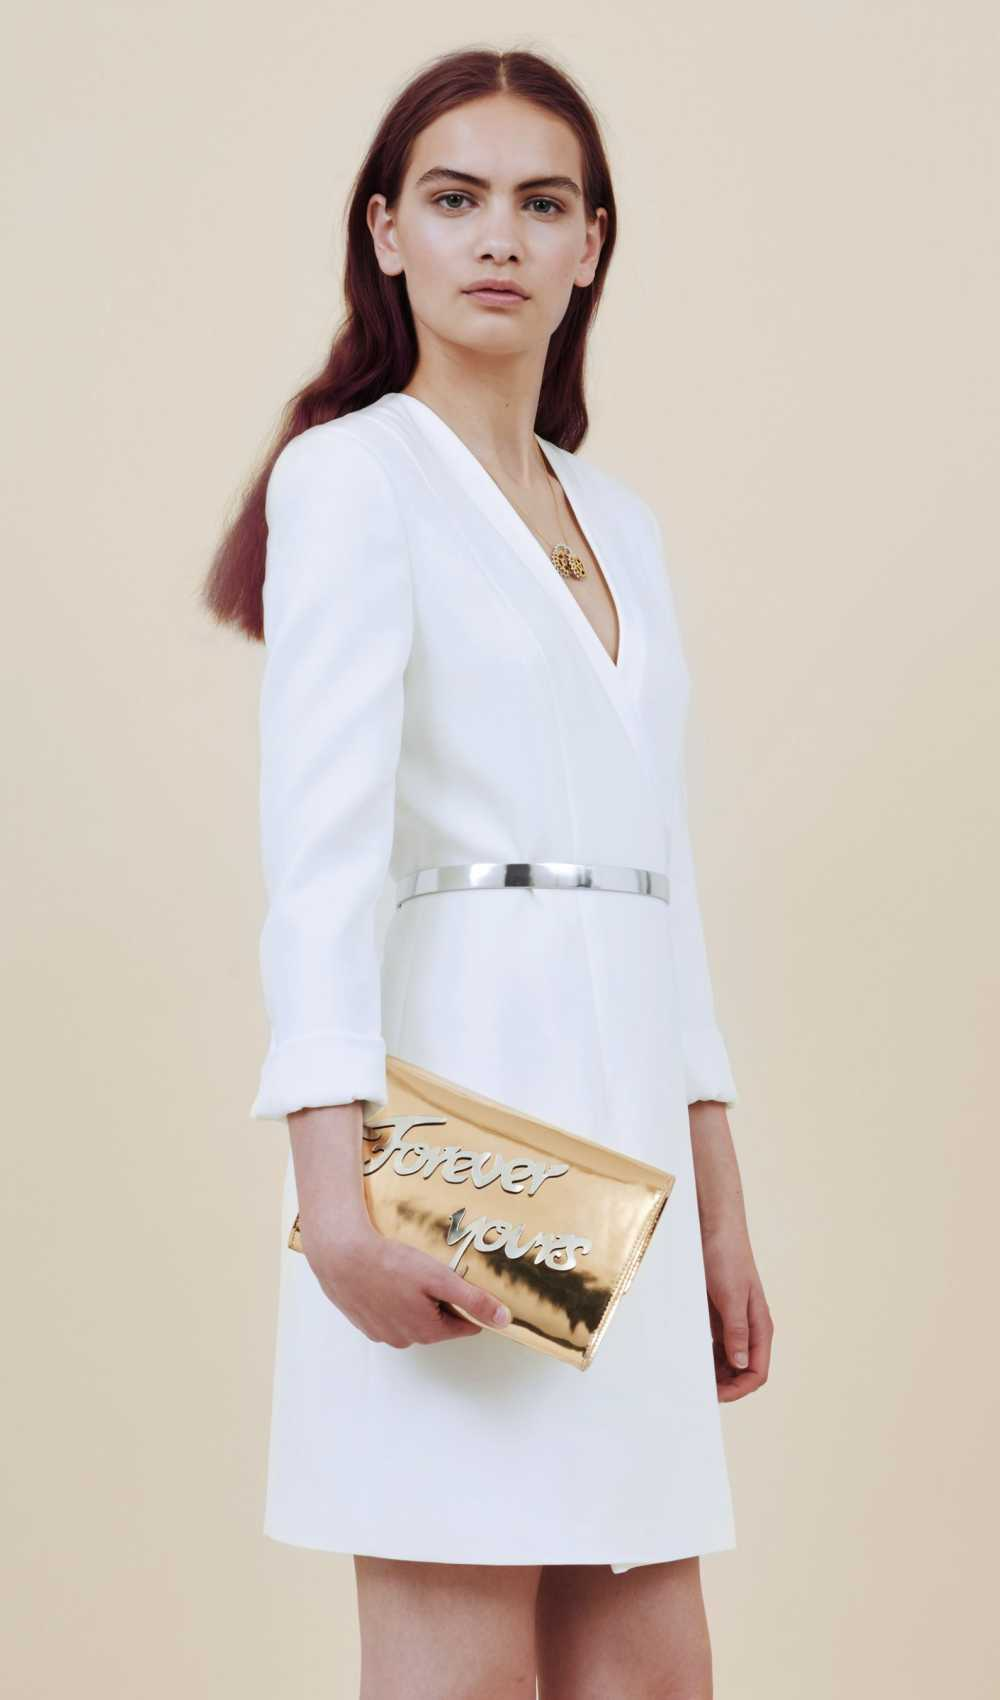 Lookbook Picture of the Forever Yours Clutch